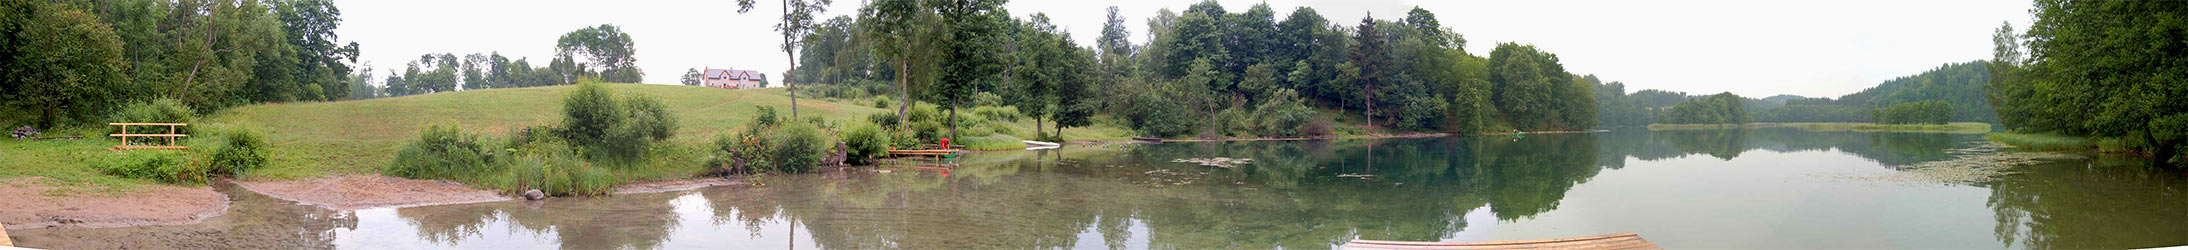 Panorama - the lake under the guesthouse